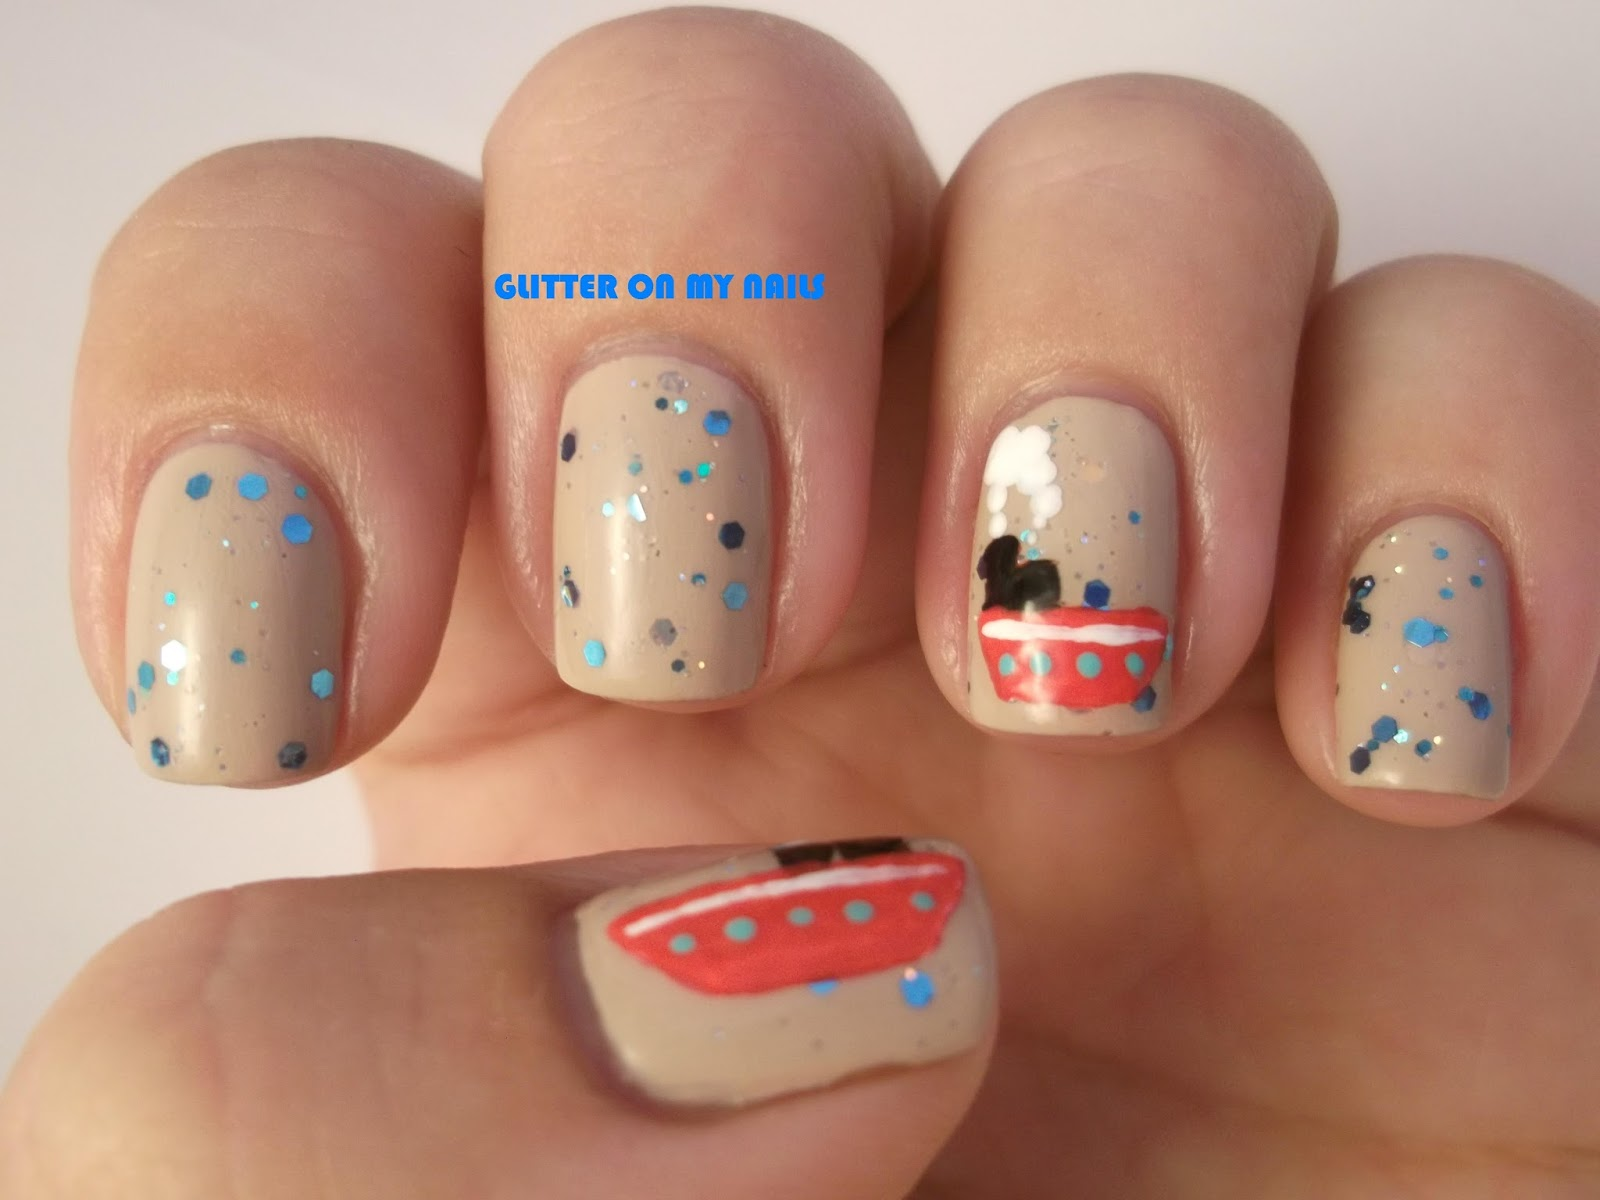 GLITTER ON MY NAILS: SUMMER NAILS #9 BARCOS